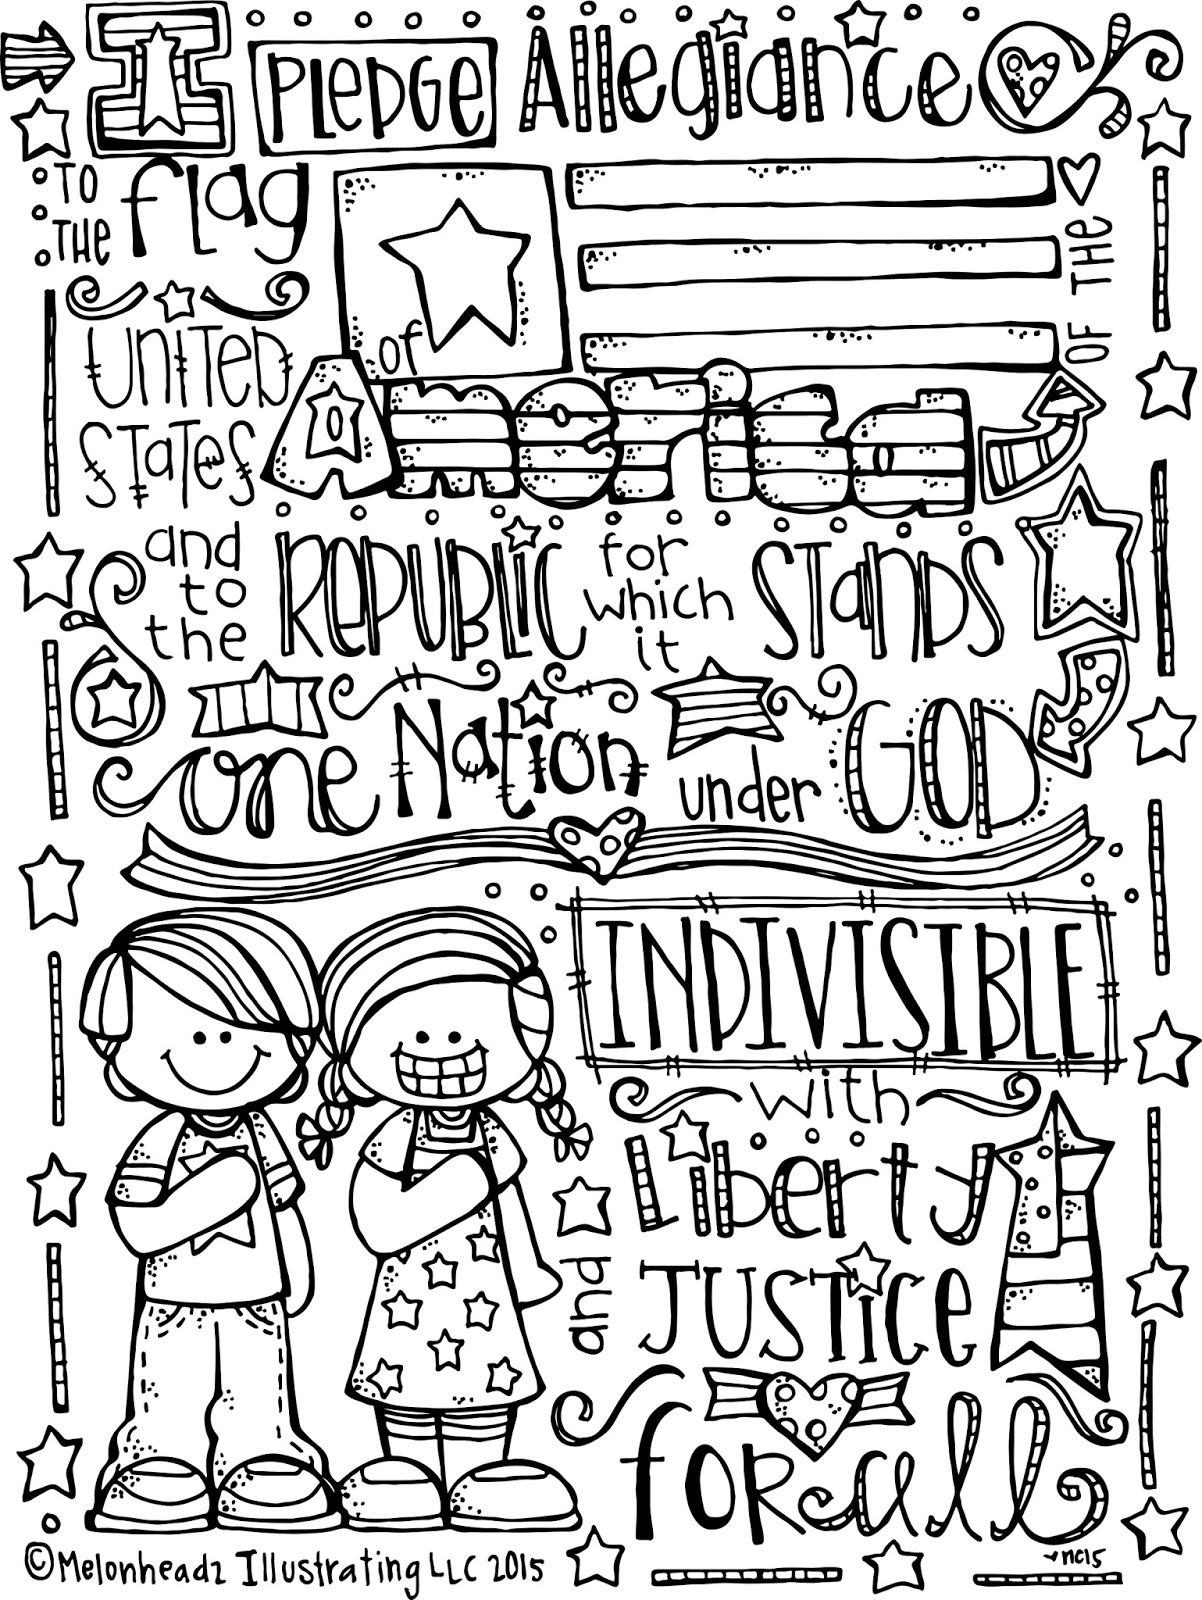 Happy birthday america coloring pages